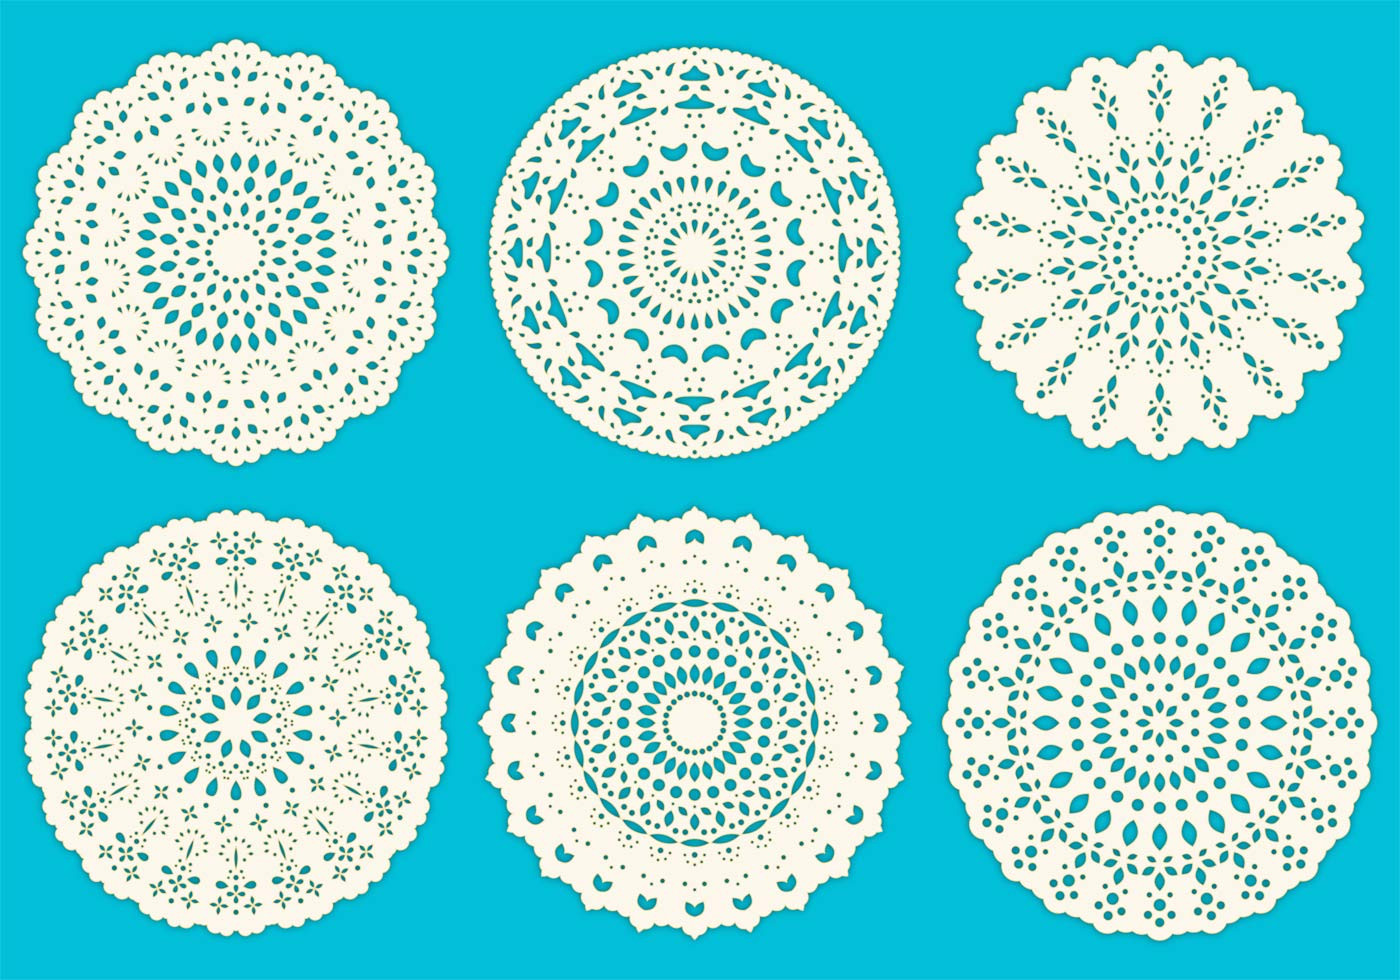 Unique Crochet Lace Vector Circles Download Free Vector Art Crochet Lace Of Amazing 43 Photos Crochet Lace